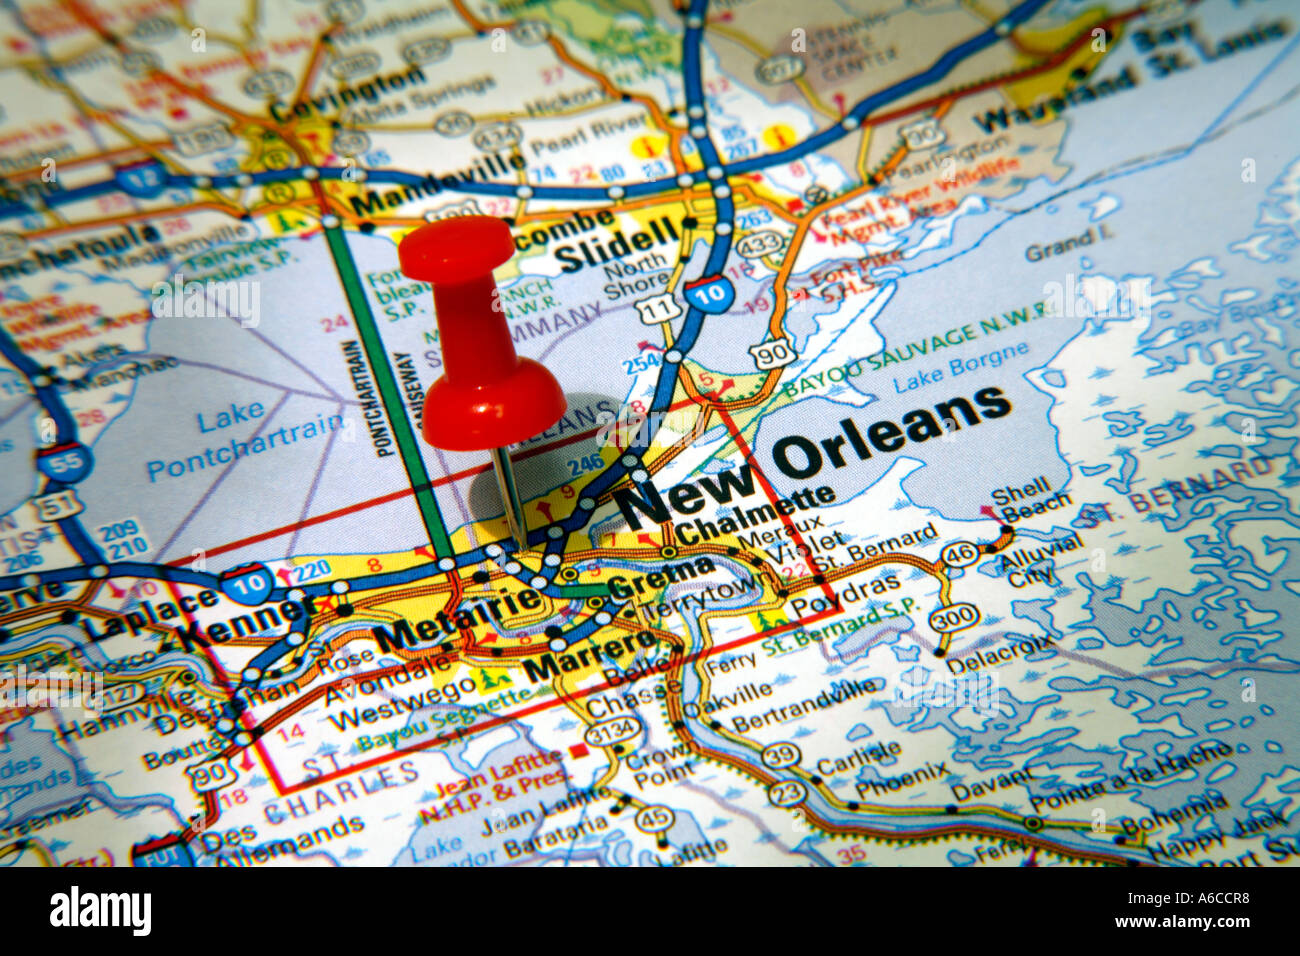 Map Usa Louisiana%0A Map Pin pointing to New Orleans Louisiana USA on a road map